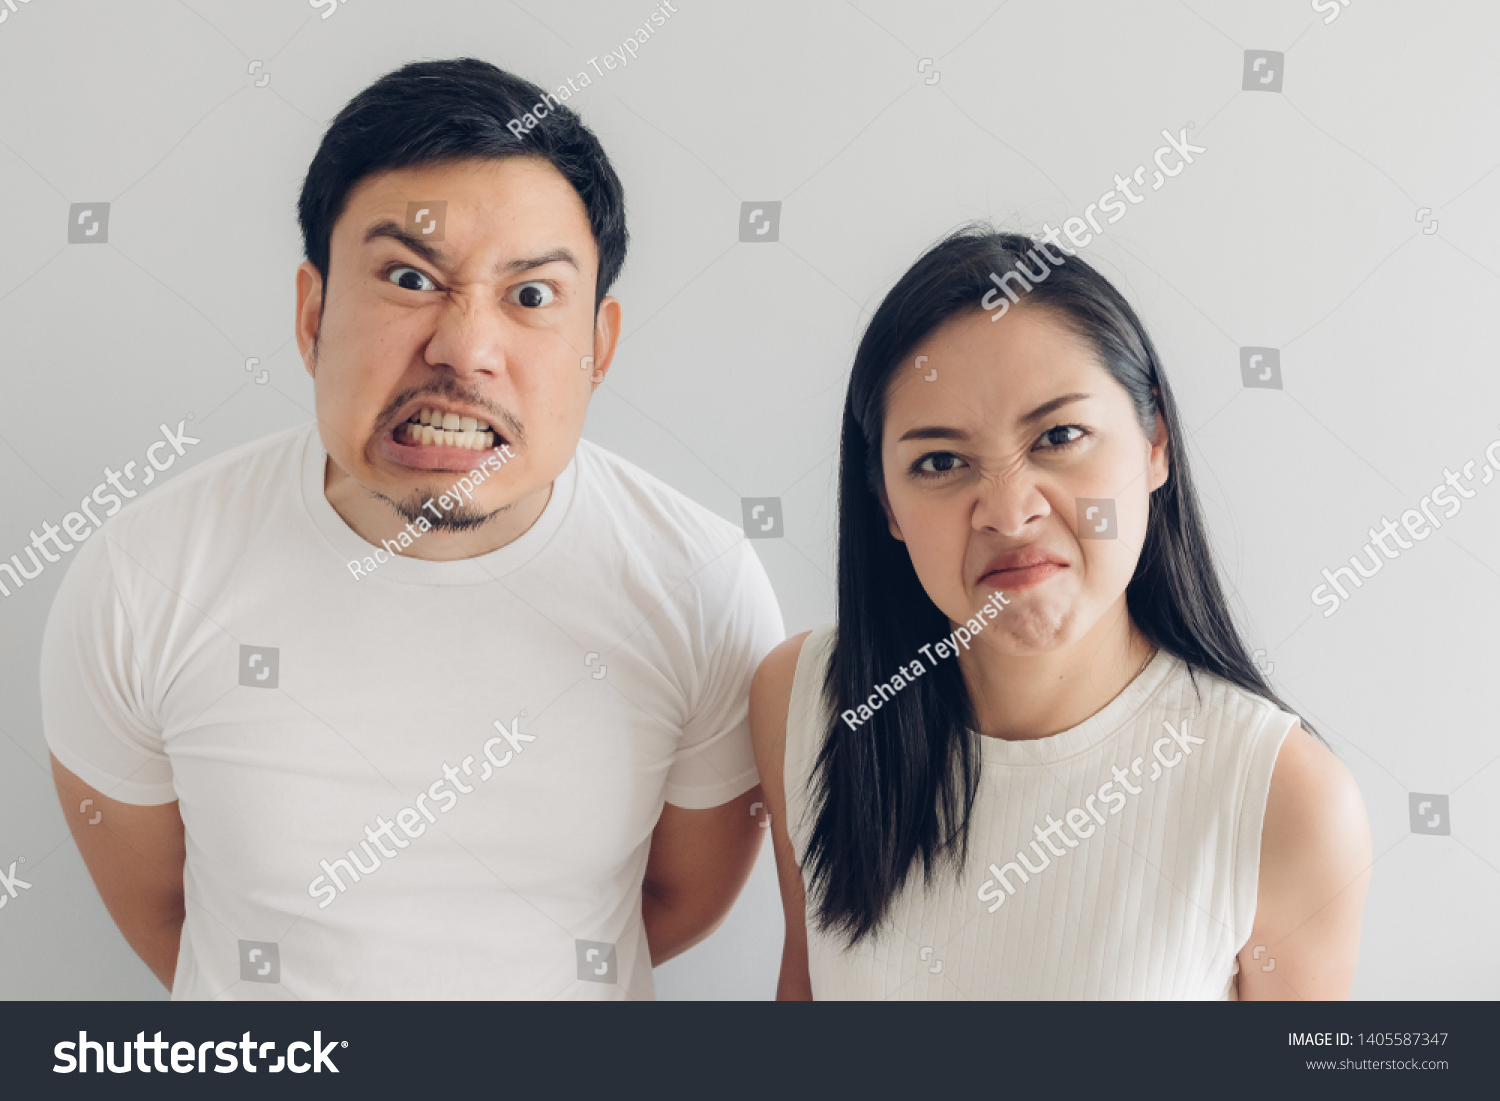 Angry Asian Couple Lover White Tshirt Stock Photo Edit Now 1405587347